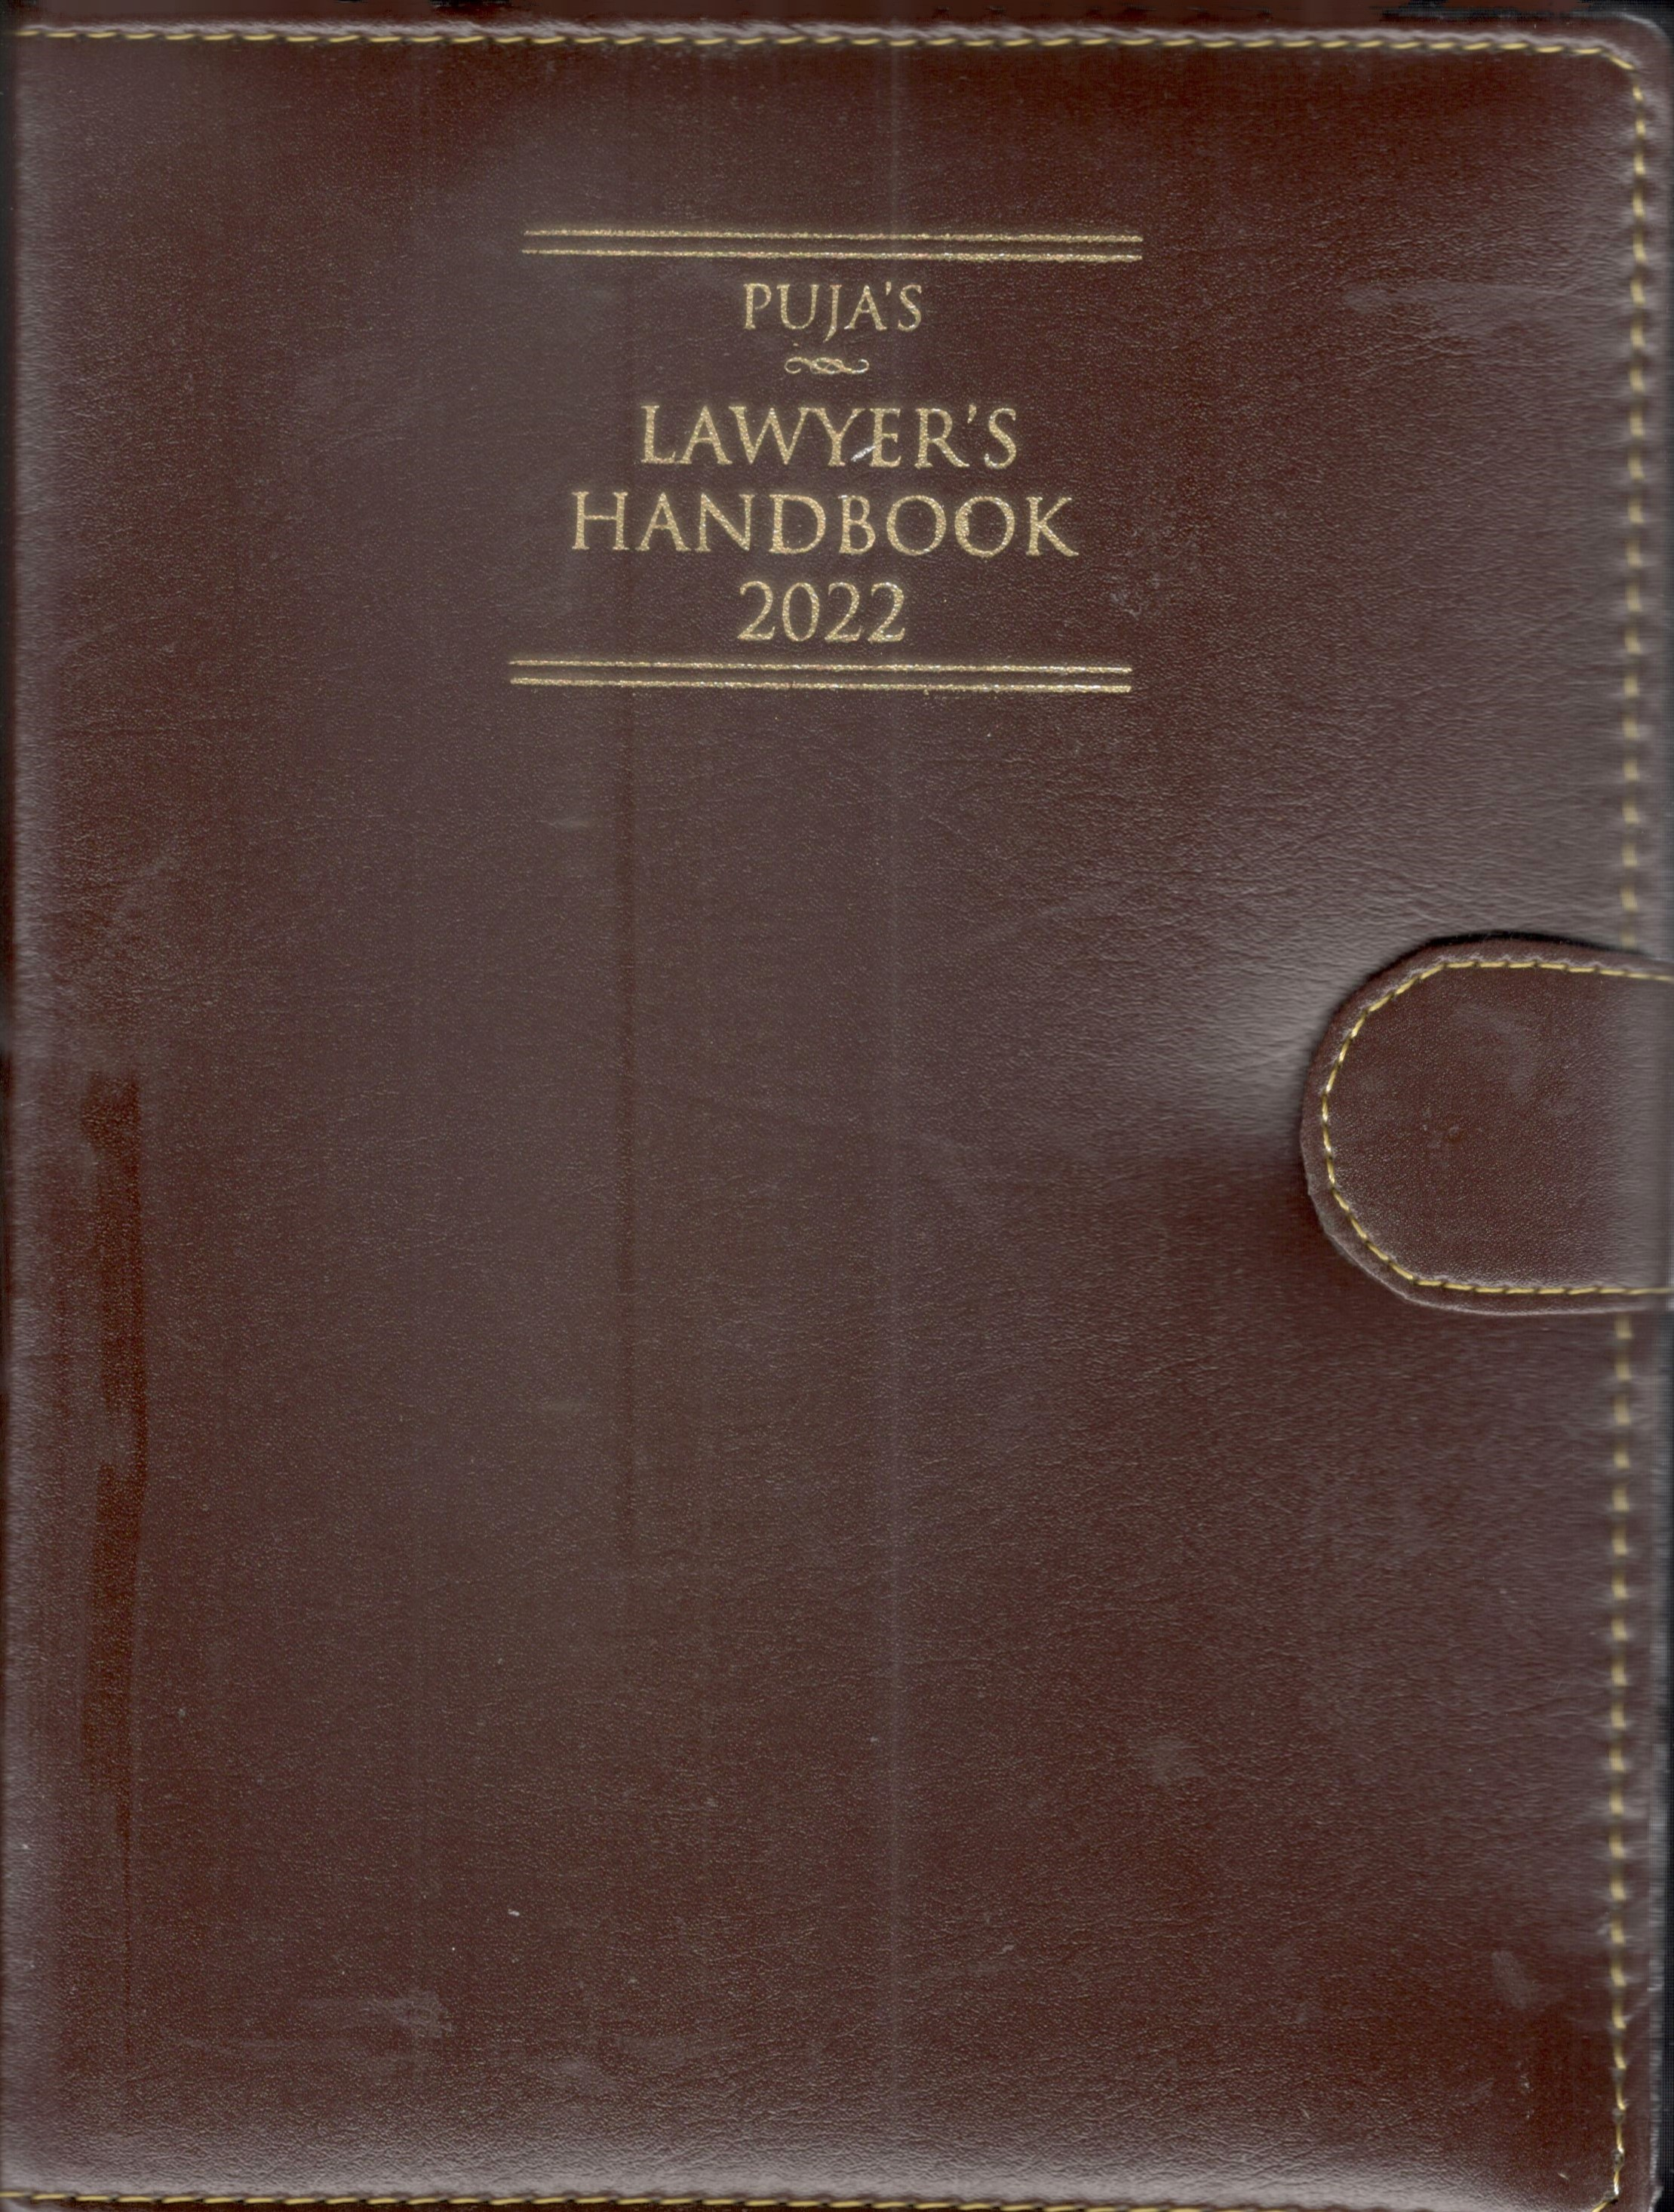 Puja's Lawyer's Handbook 2022 - Brown Executive Big Size with Button